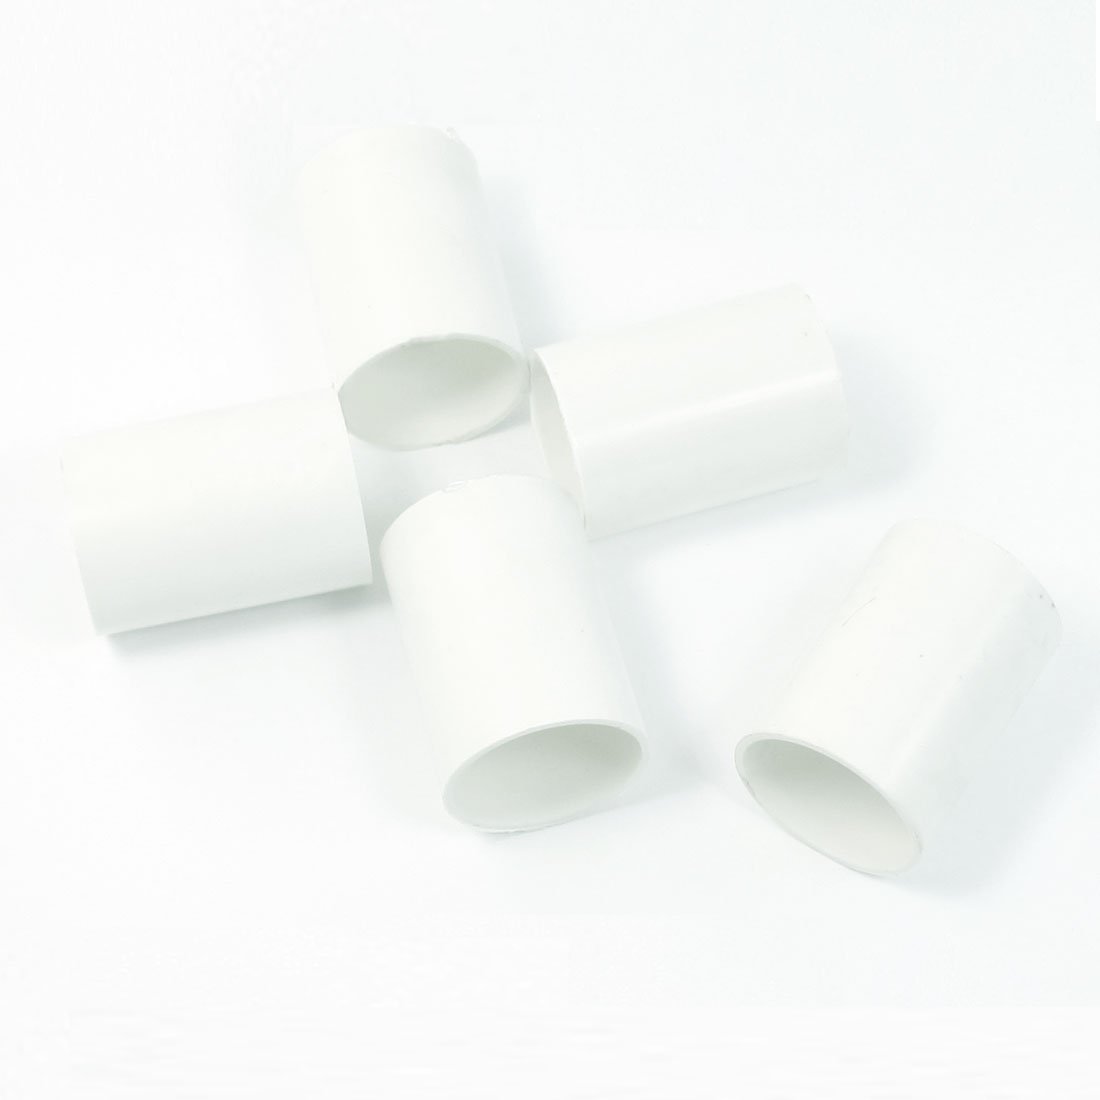 5 Pcs 32mm Inner Diameter Straight PVC Pipe Connectors Fittings White